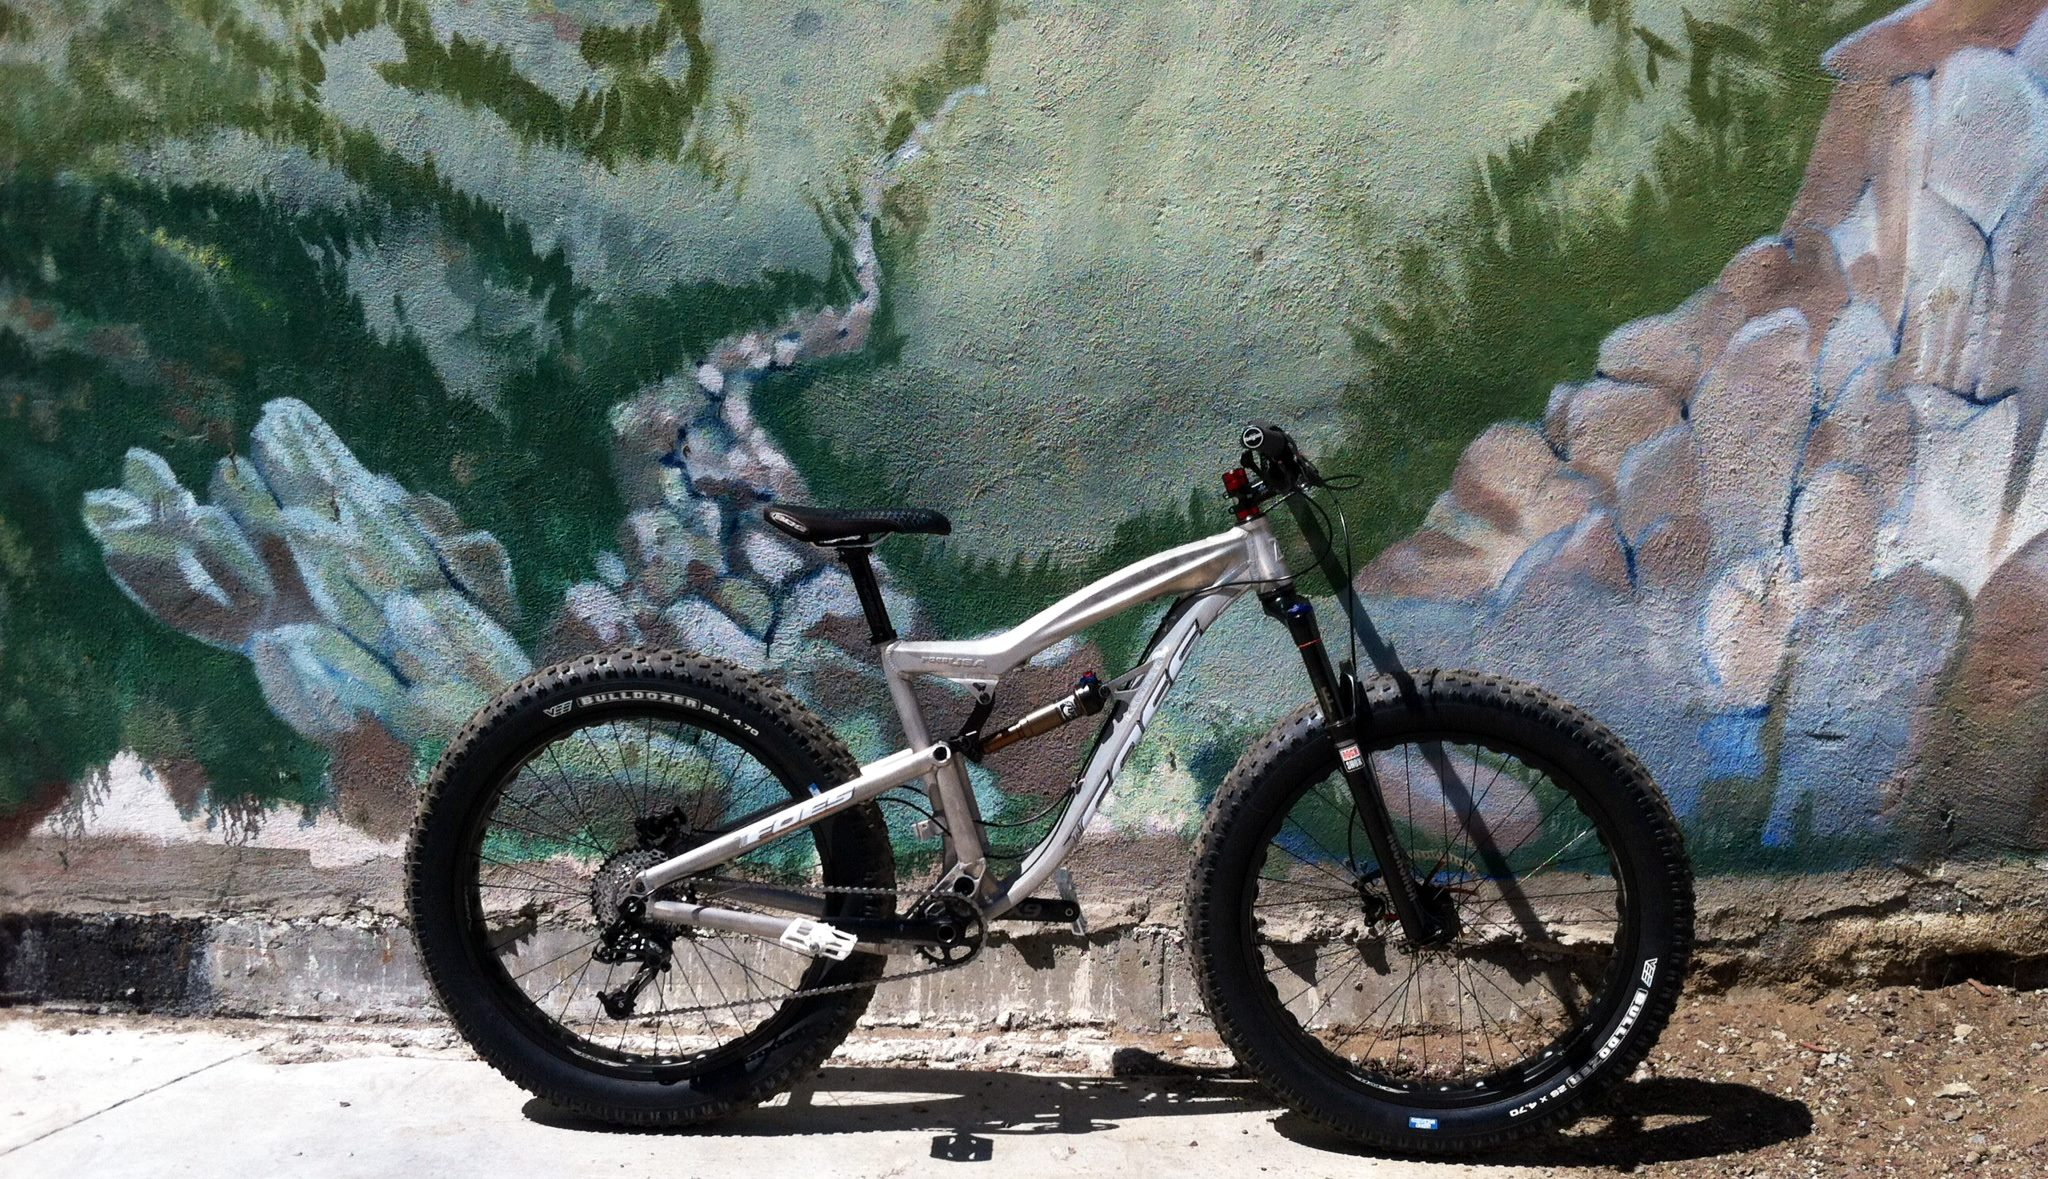 Foes' prototype fat full suspension bike. Photo: Foes Racing USA